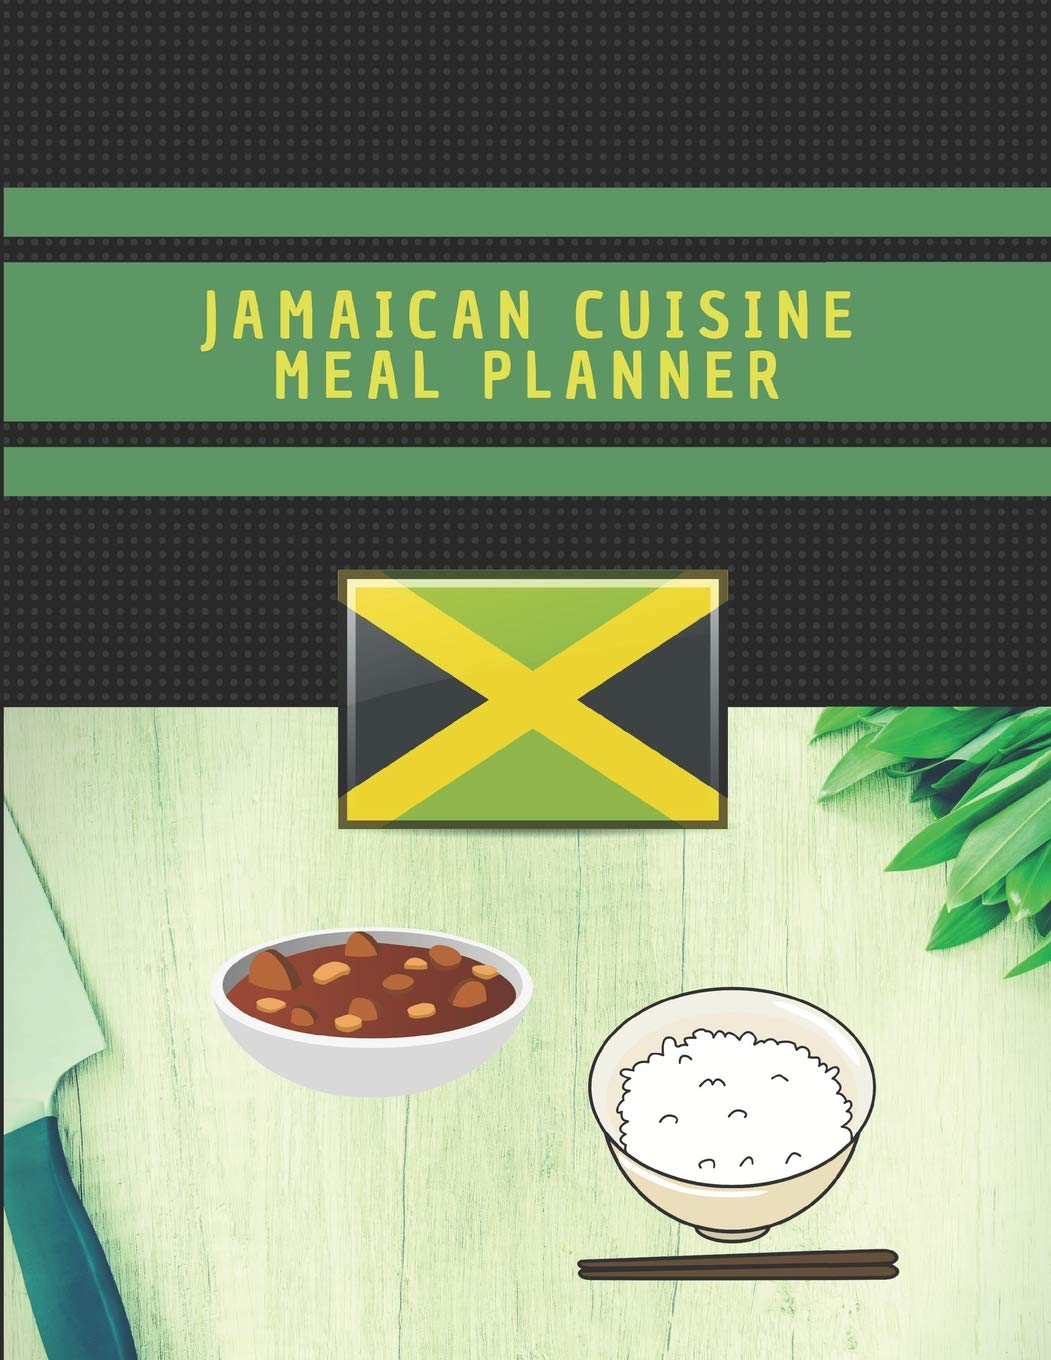 Diet meal plans for jamaicans